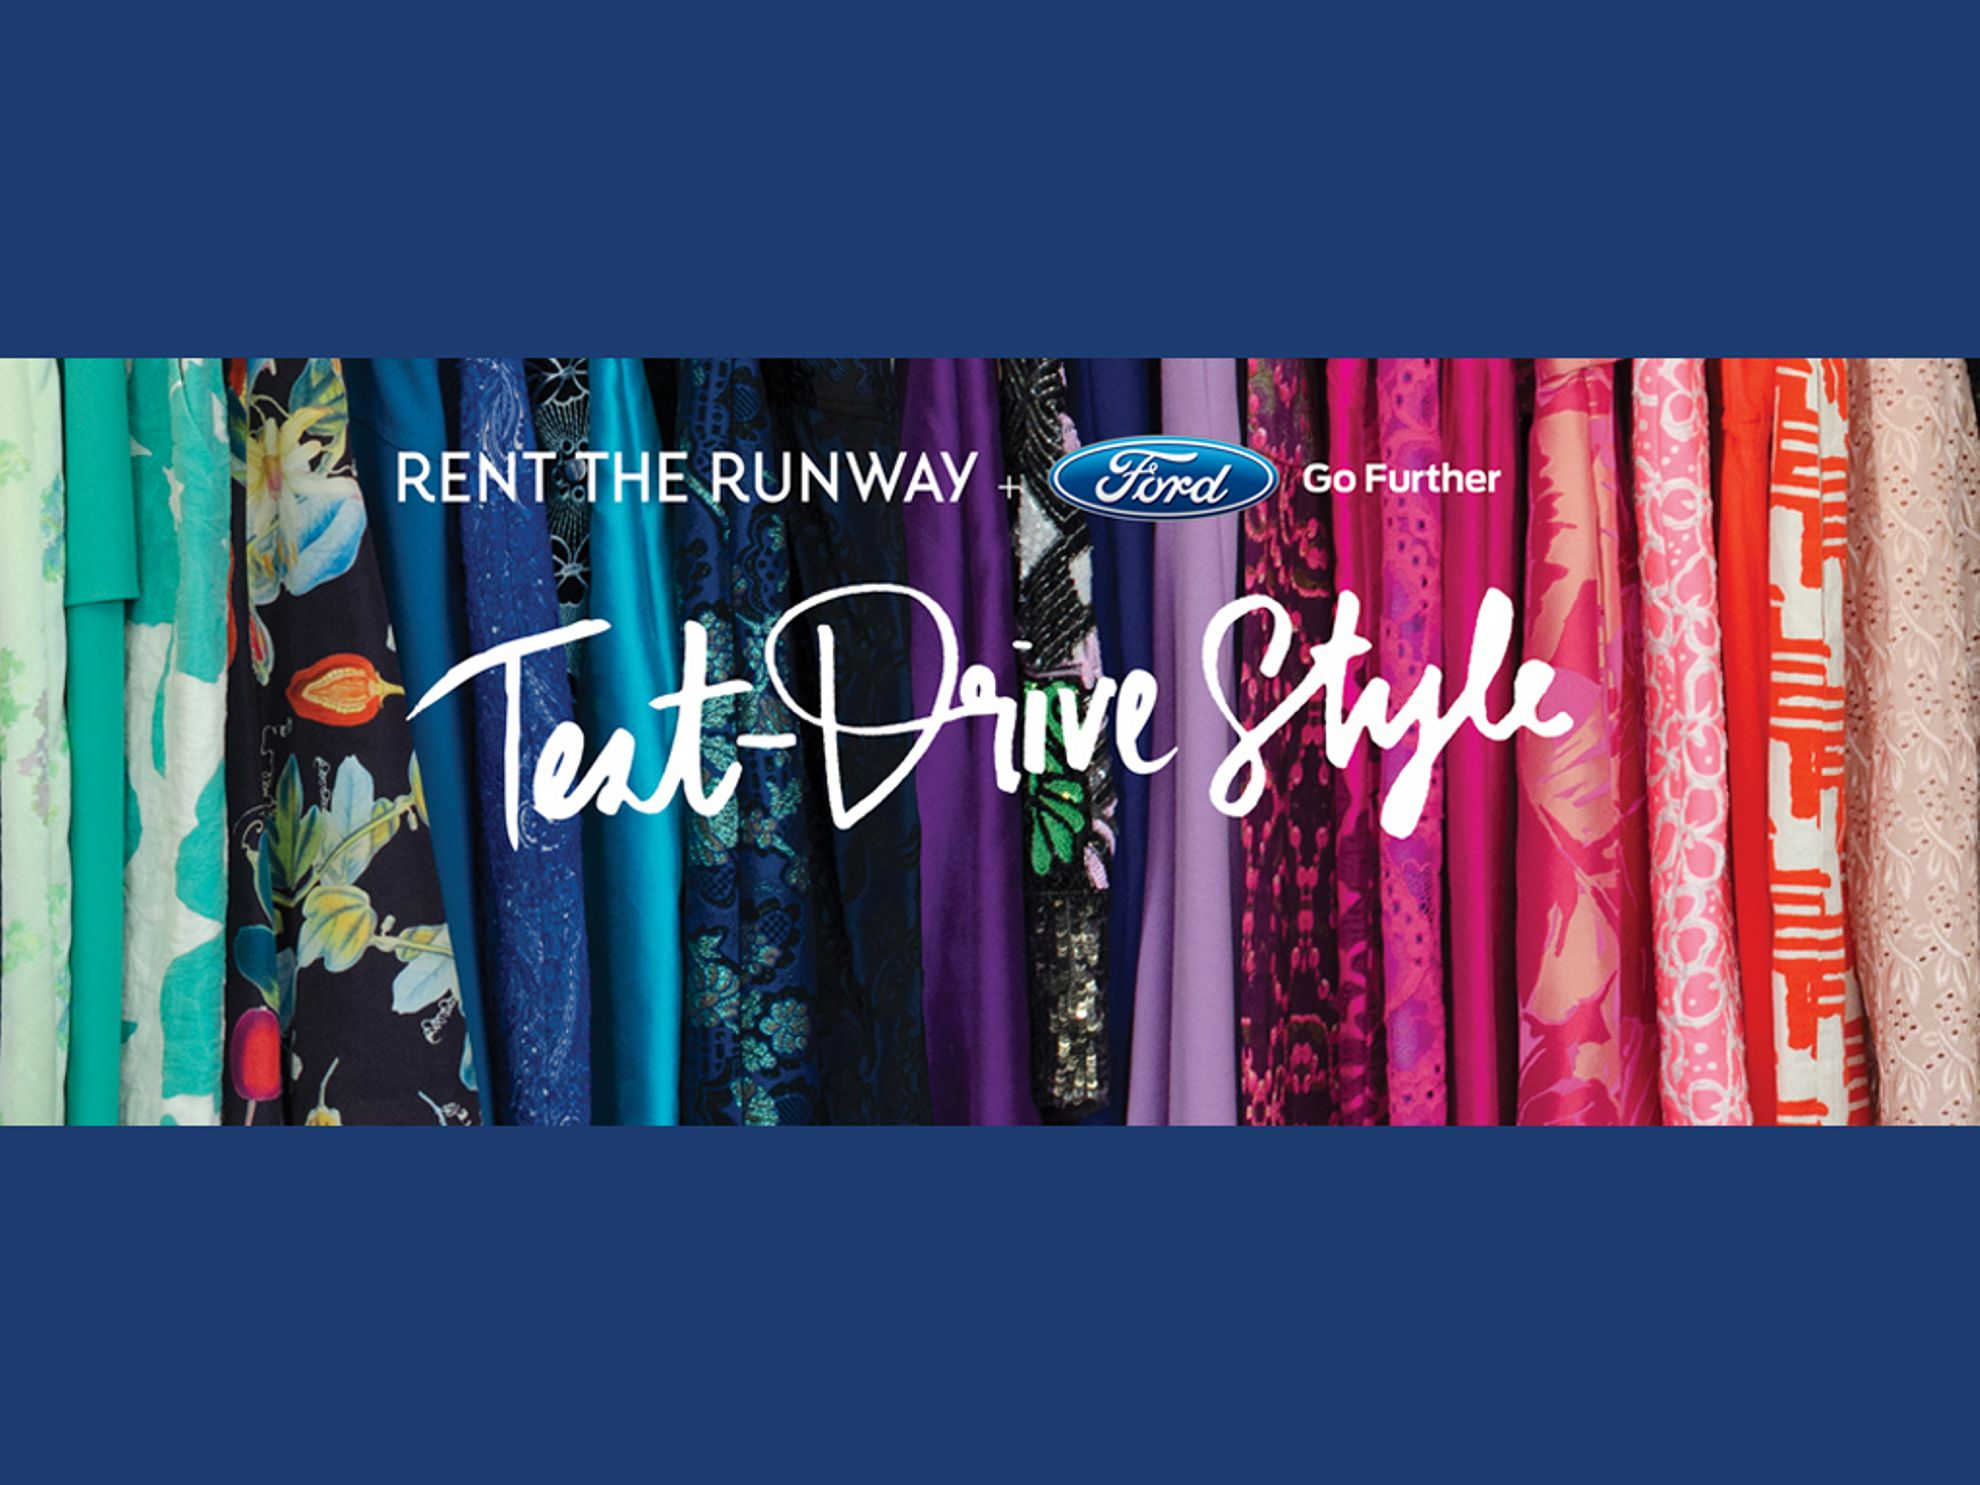 Ford Rent the Runway